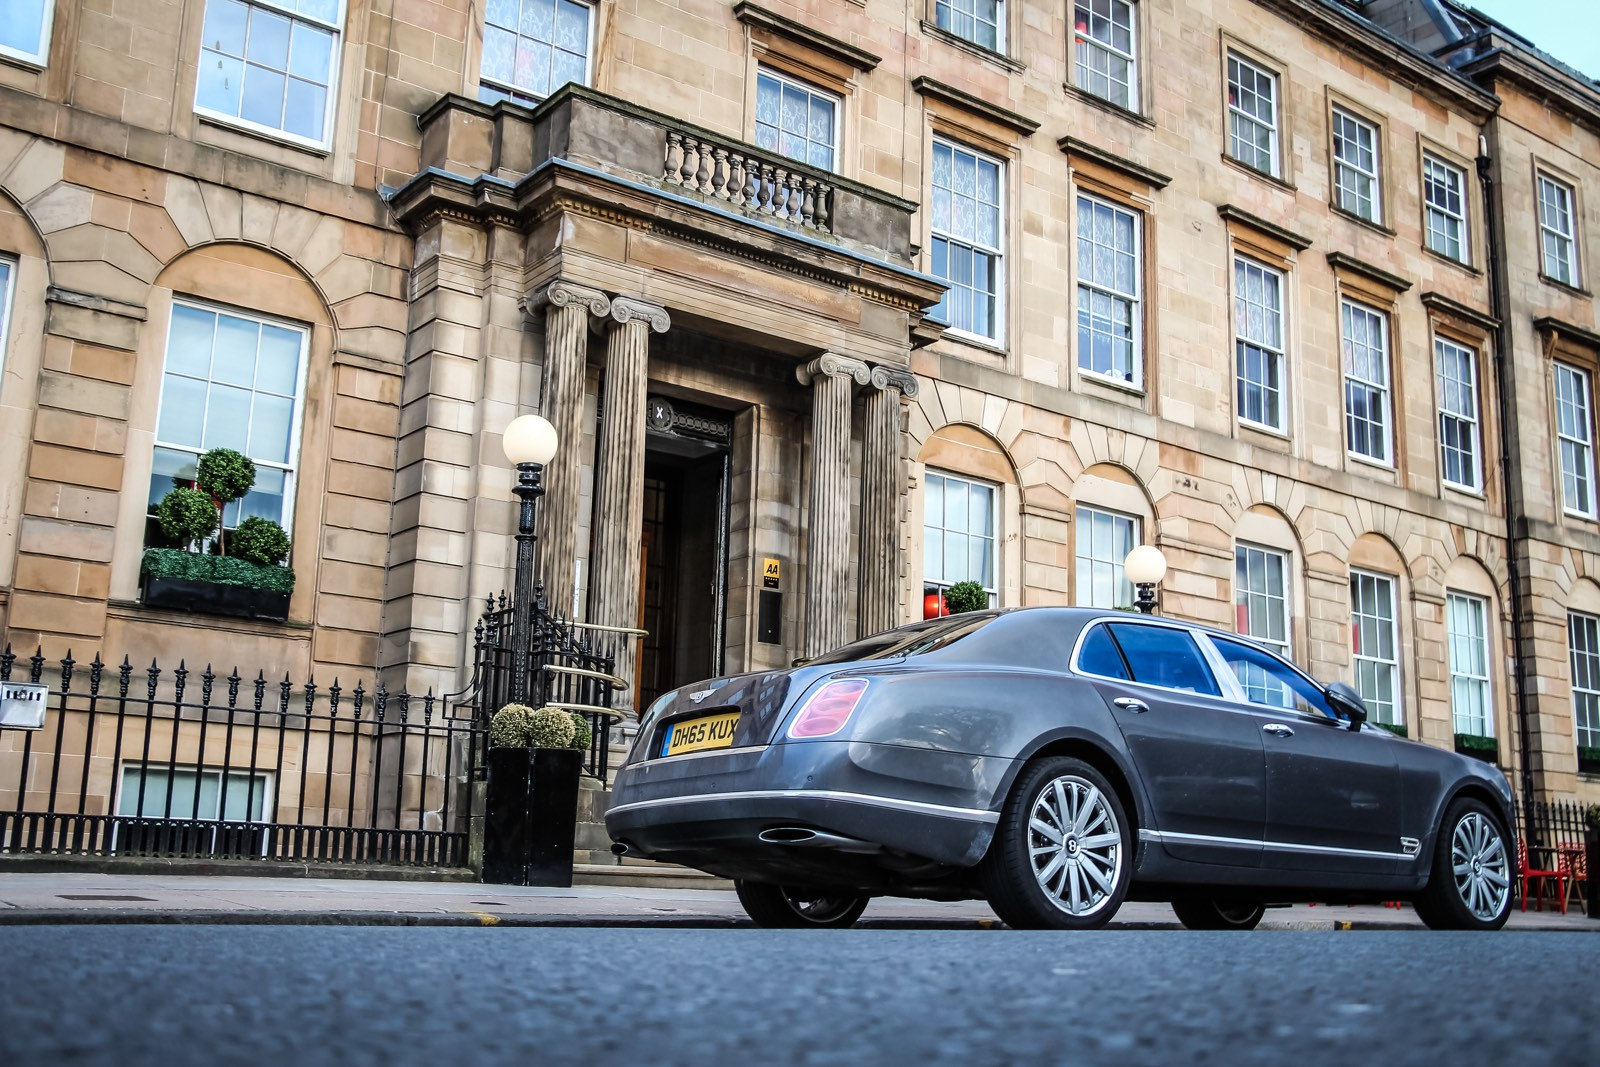 Bentley Mulsanne at the Blythswood Glasgow